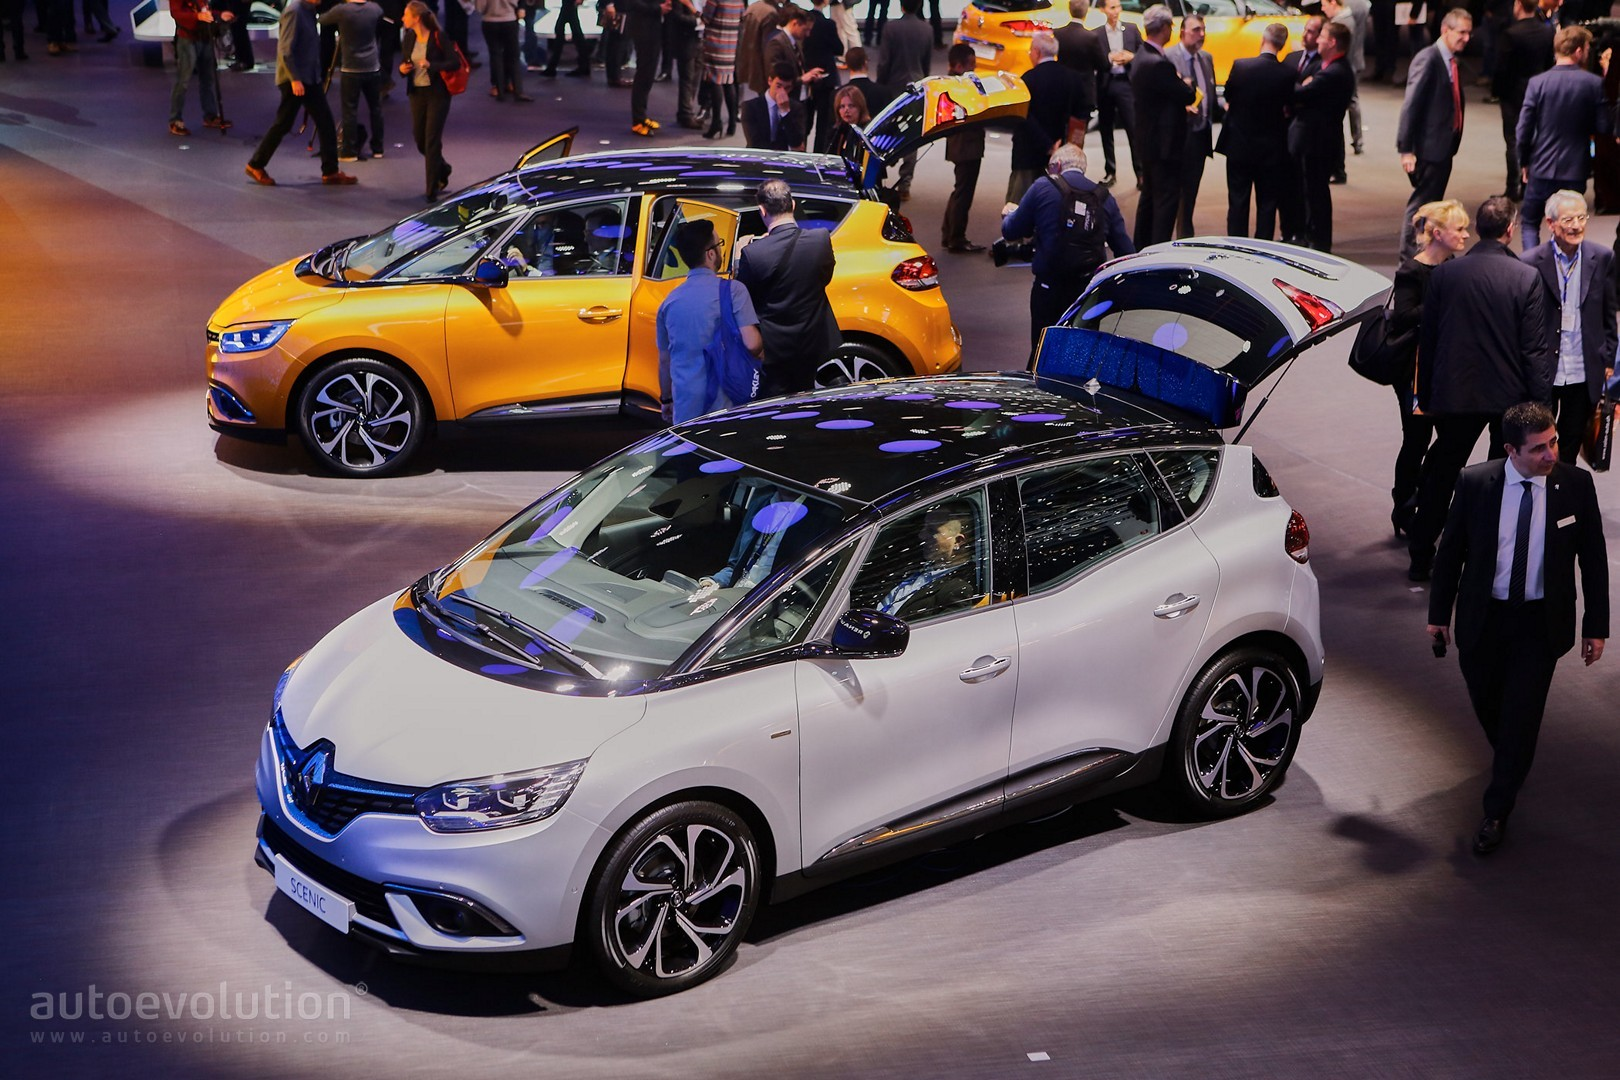 All-New Renault Scenic Is an Overdesigned MPV with Crossover Looks in Geneva - autoevolution